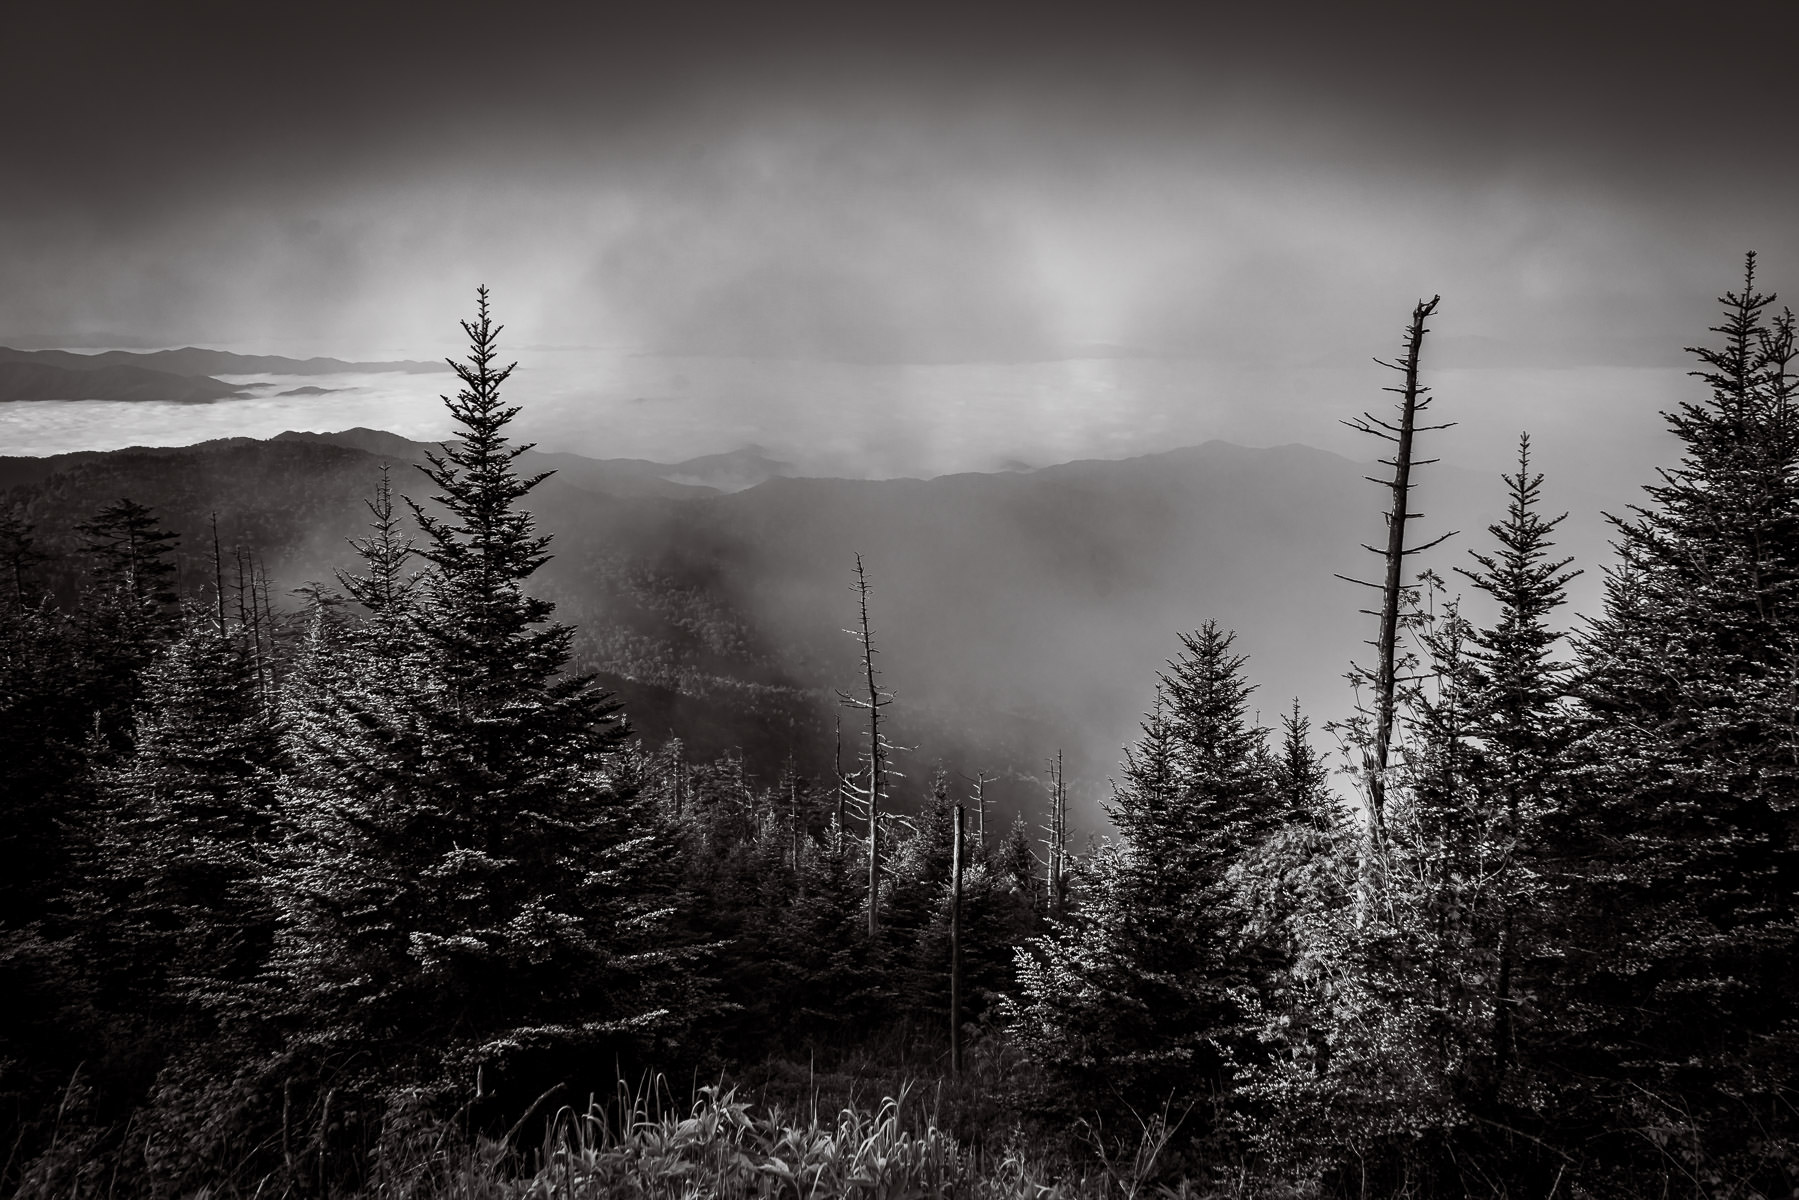 Trees in the morning fog at Clingmans Dome, Great Smoky Mountains National Park, Tennessee.